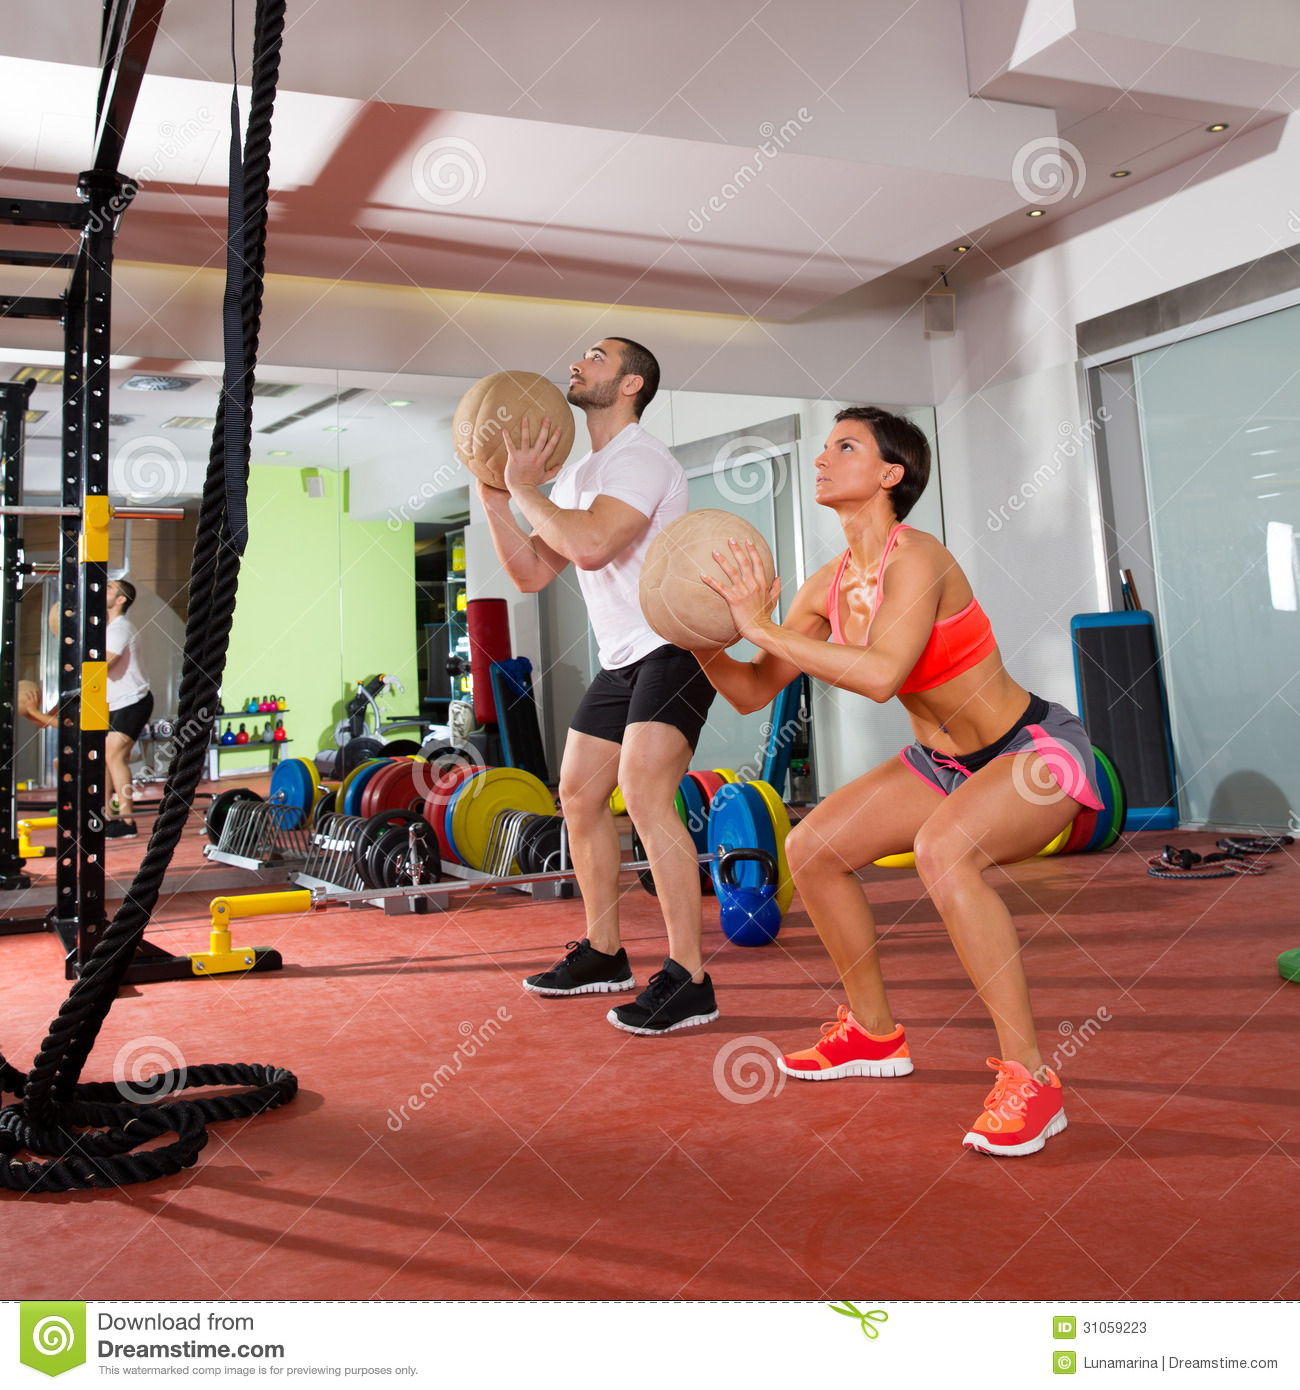 Women S Crossfit Workouts: Crossfit Ball Fitness Workout Group Woman And Man Stock